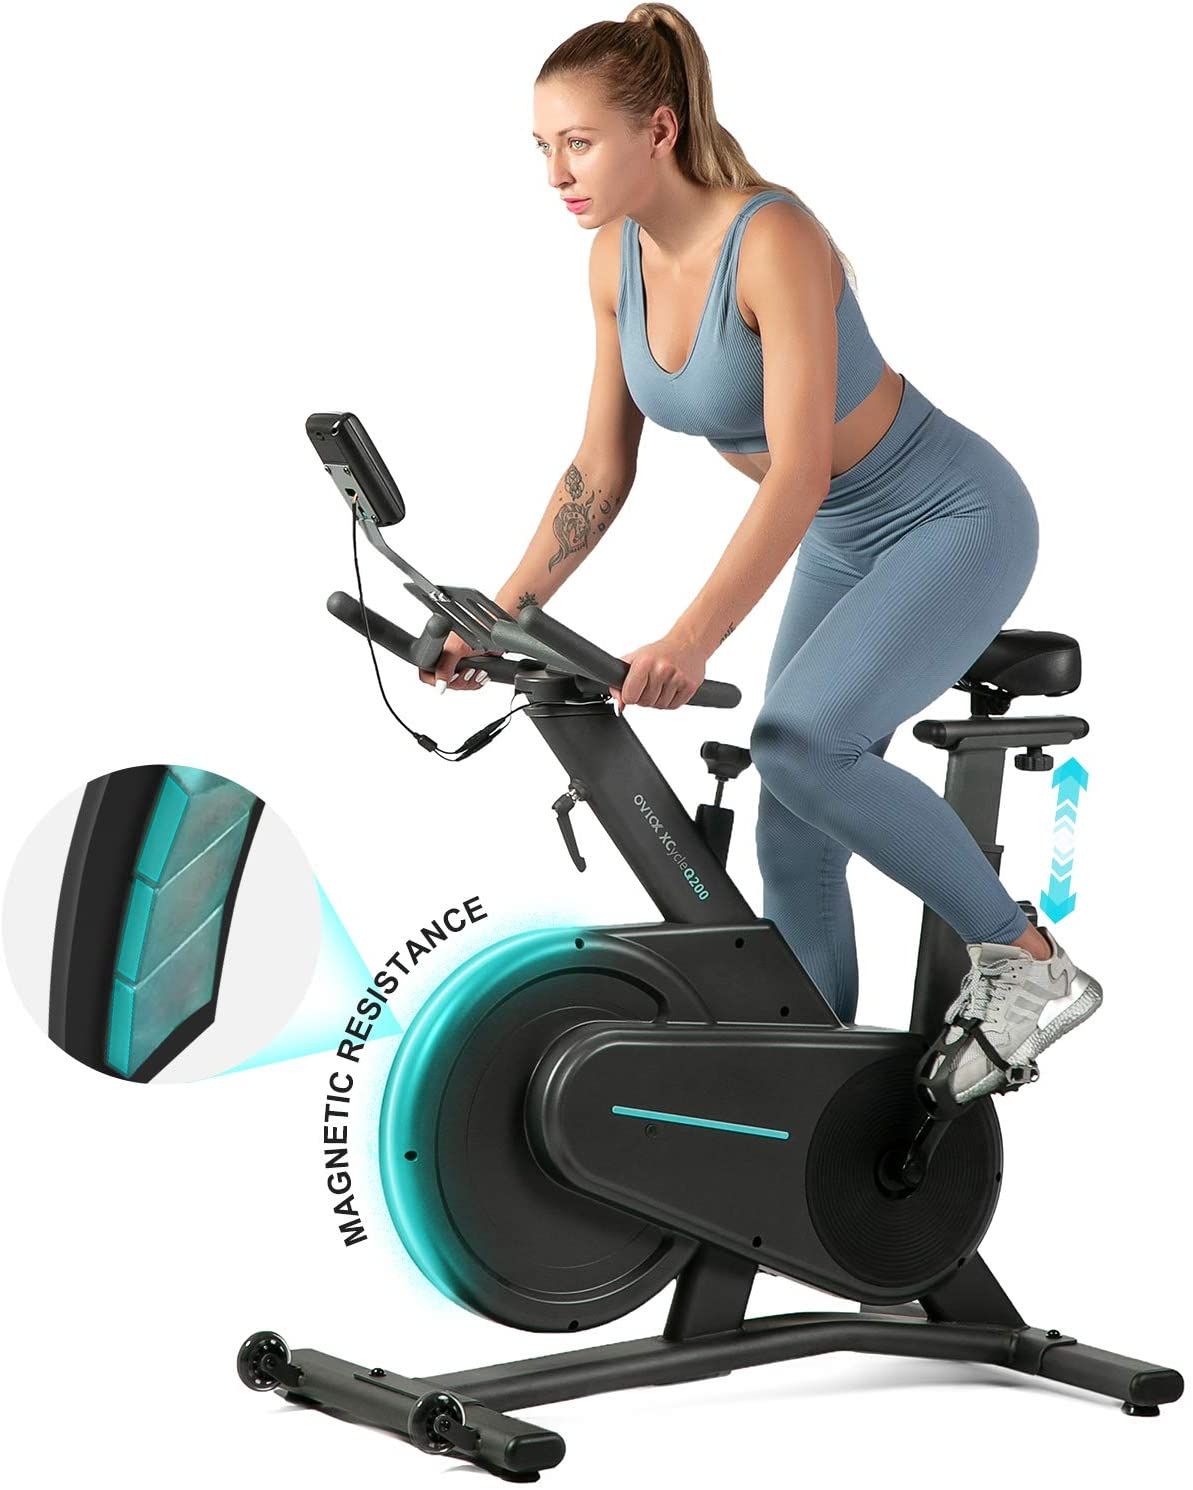 OVICX Magnetic Stationary Exercise Bike